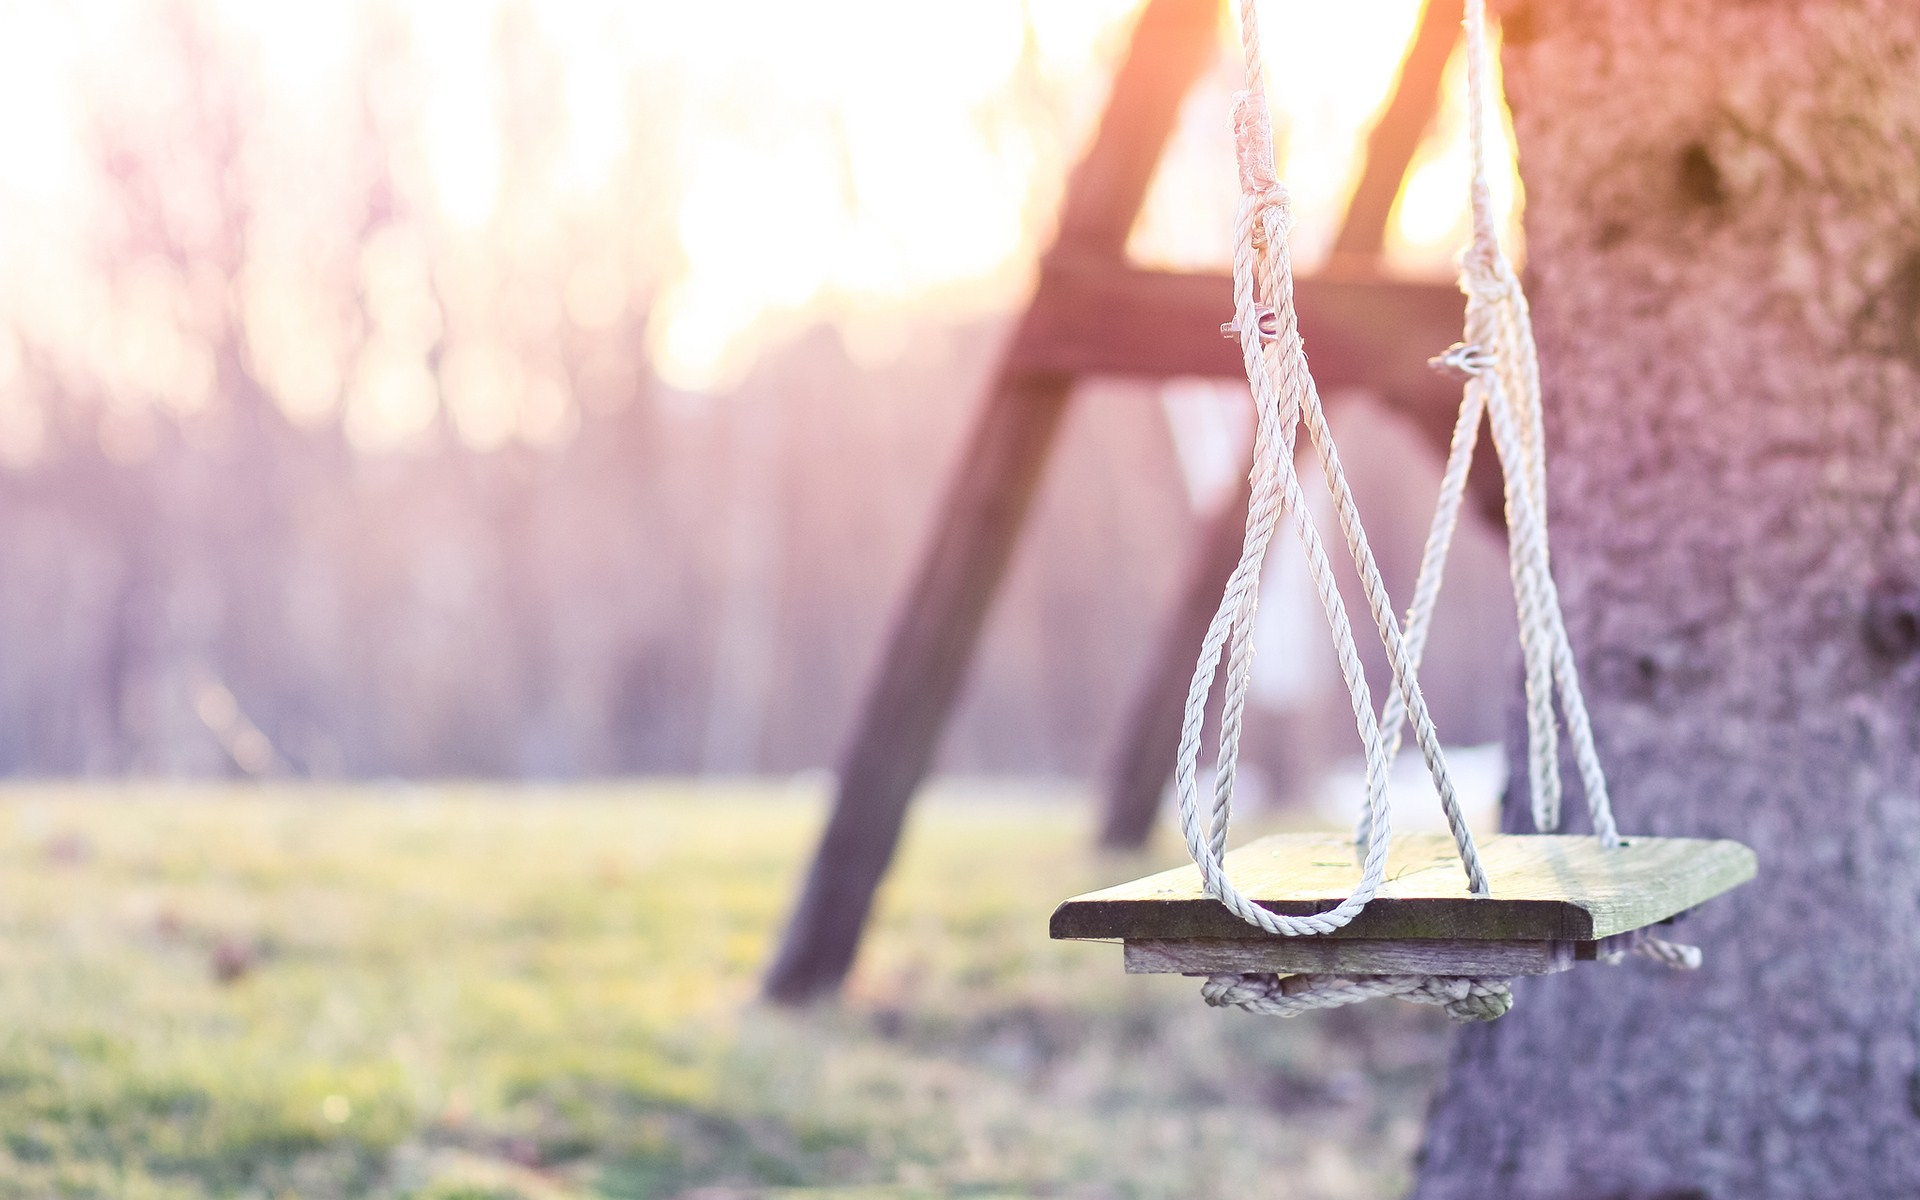 Lovely Swing Set Wallpaper